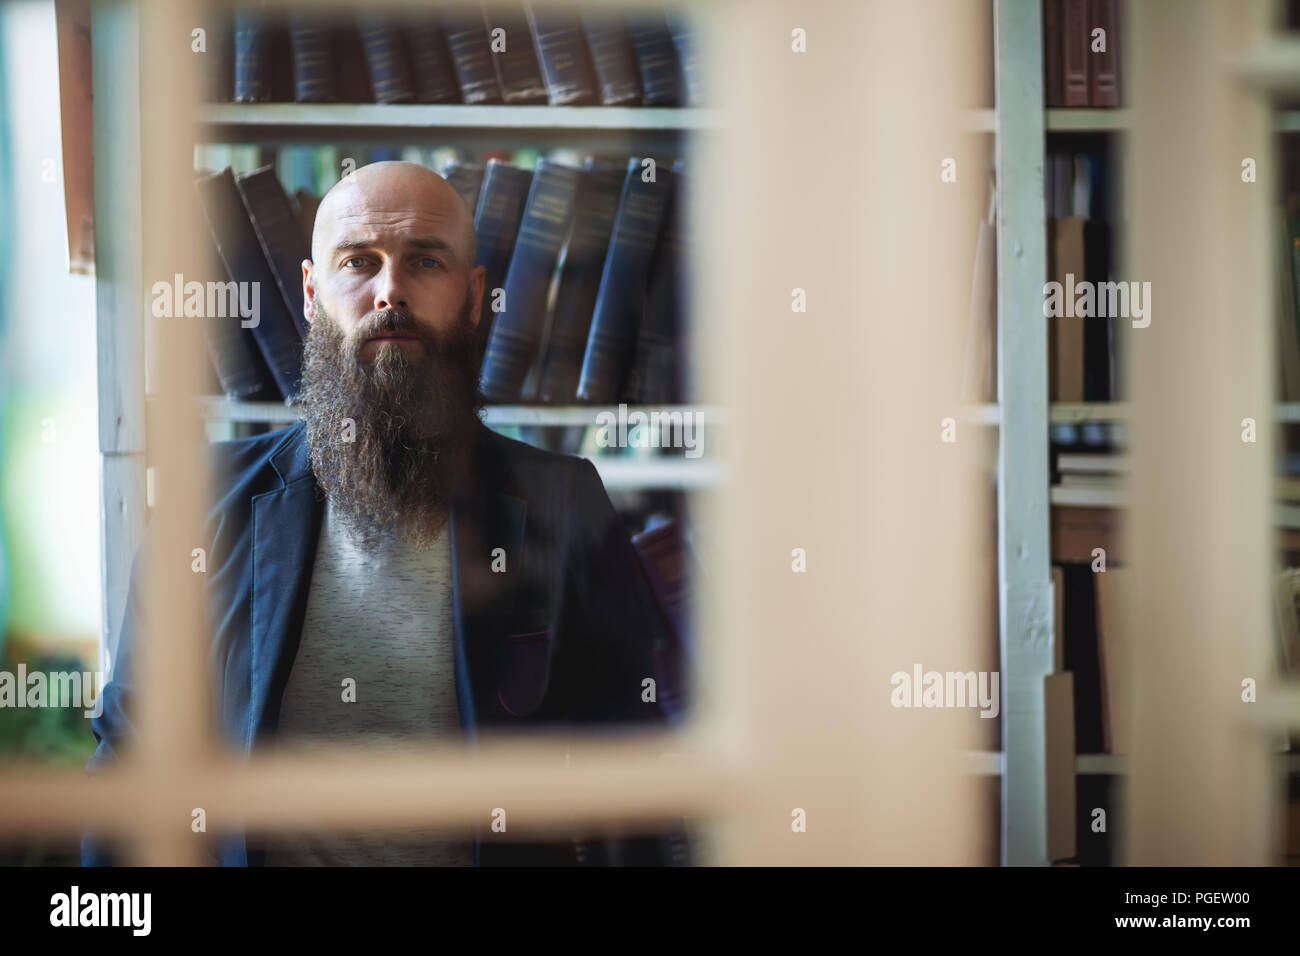 Bearded stylish man through window of library. Serious reader looks forward against background of bookshelves - Stock Image